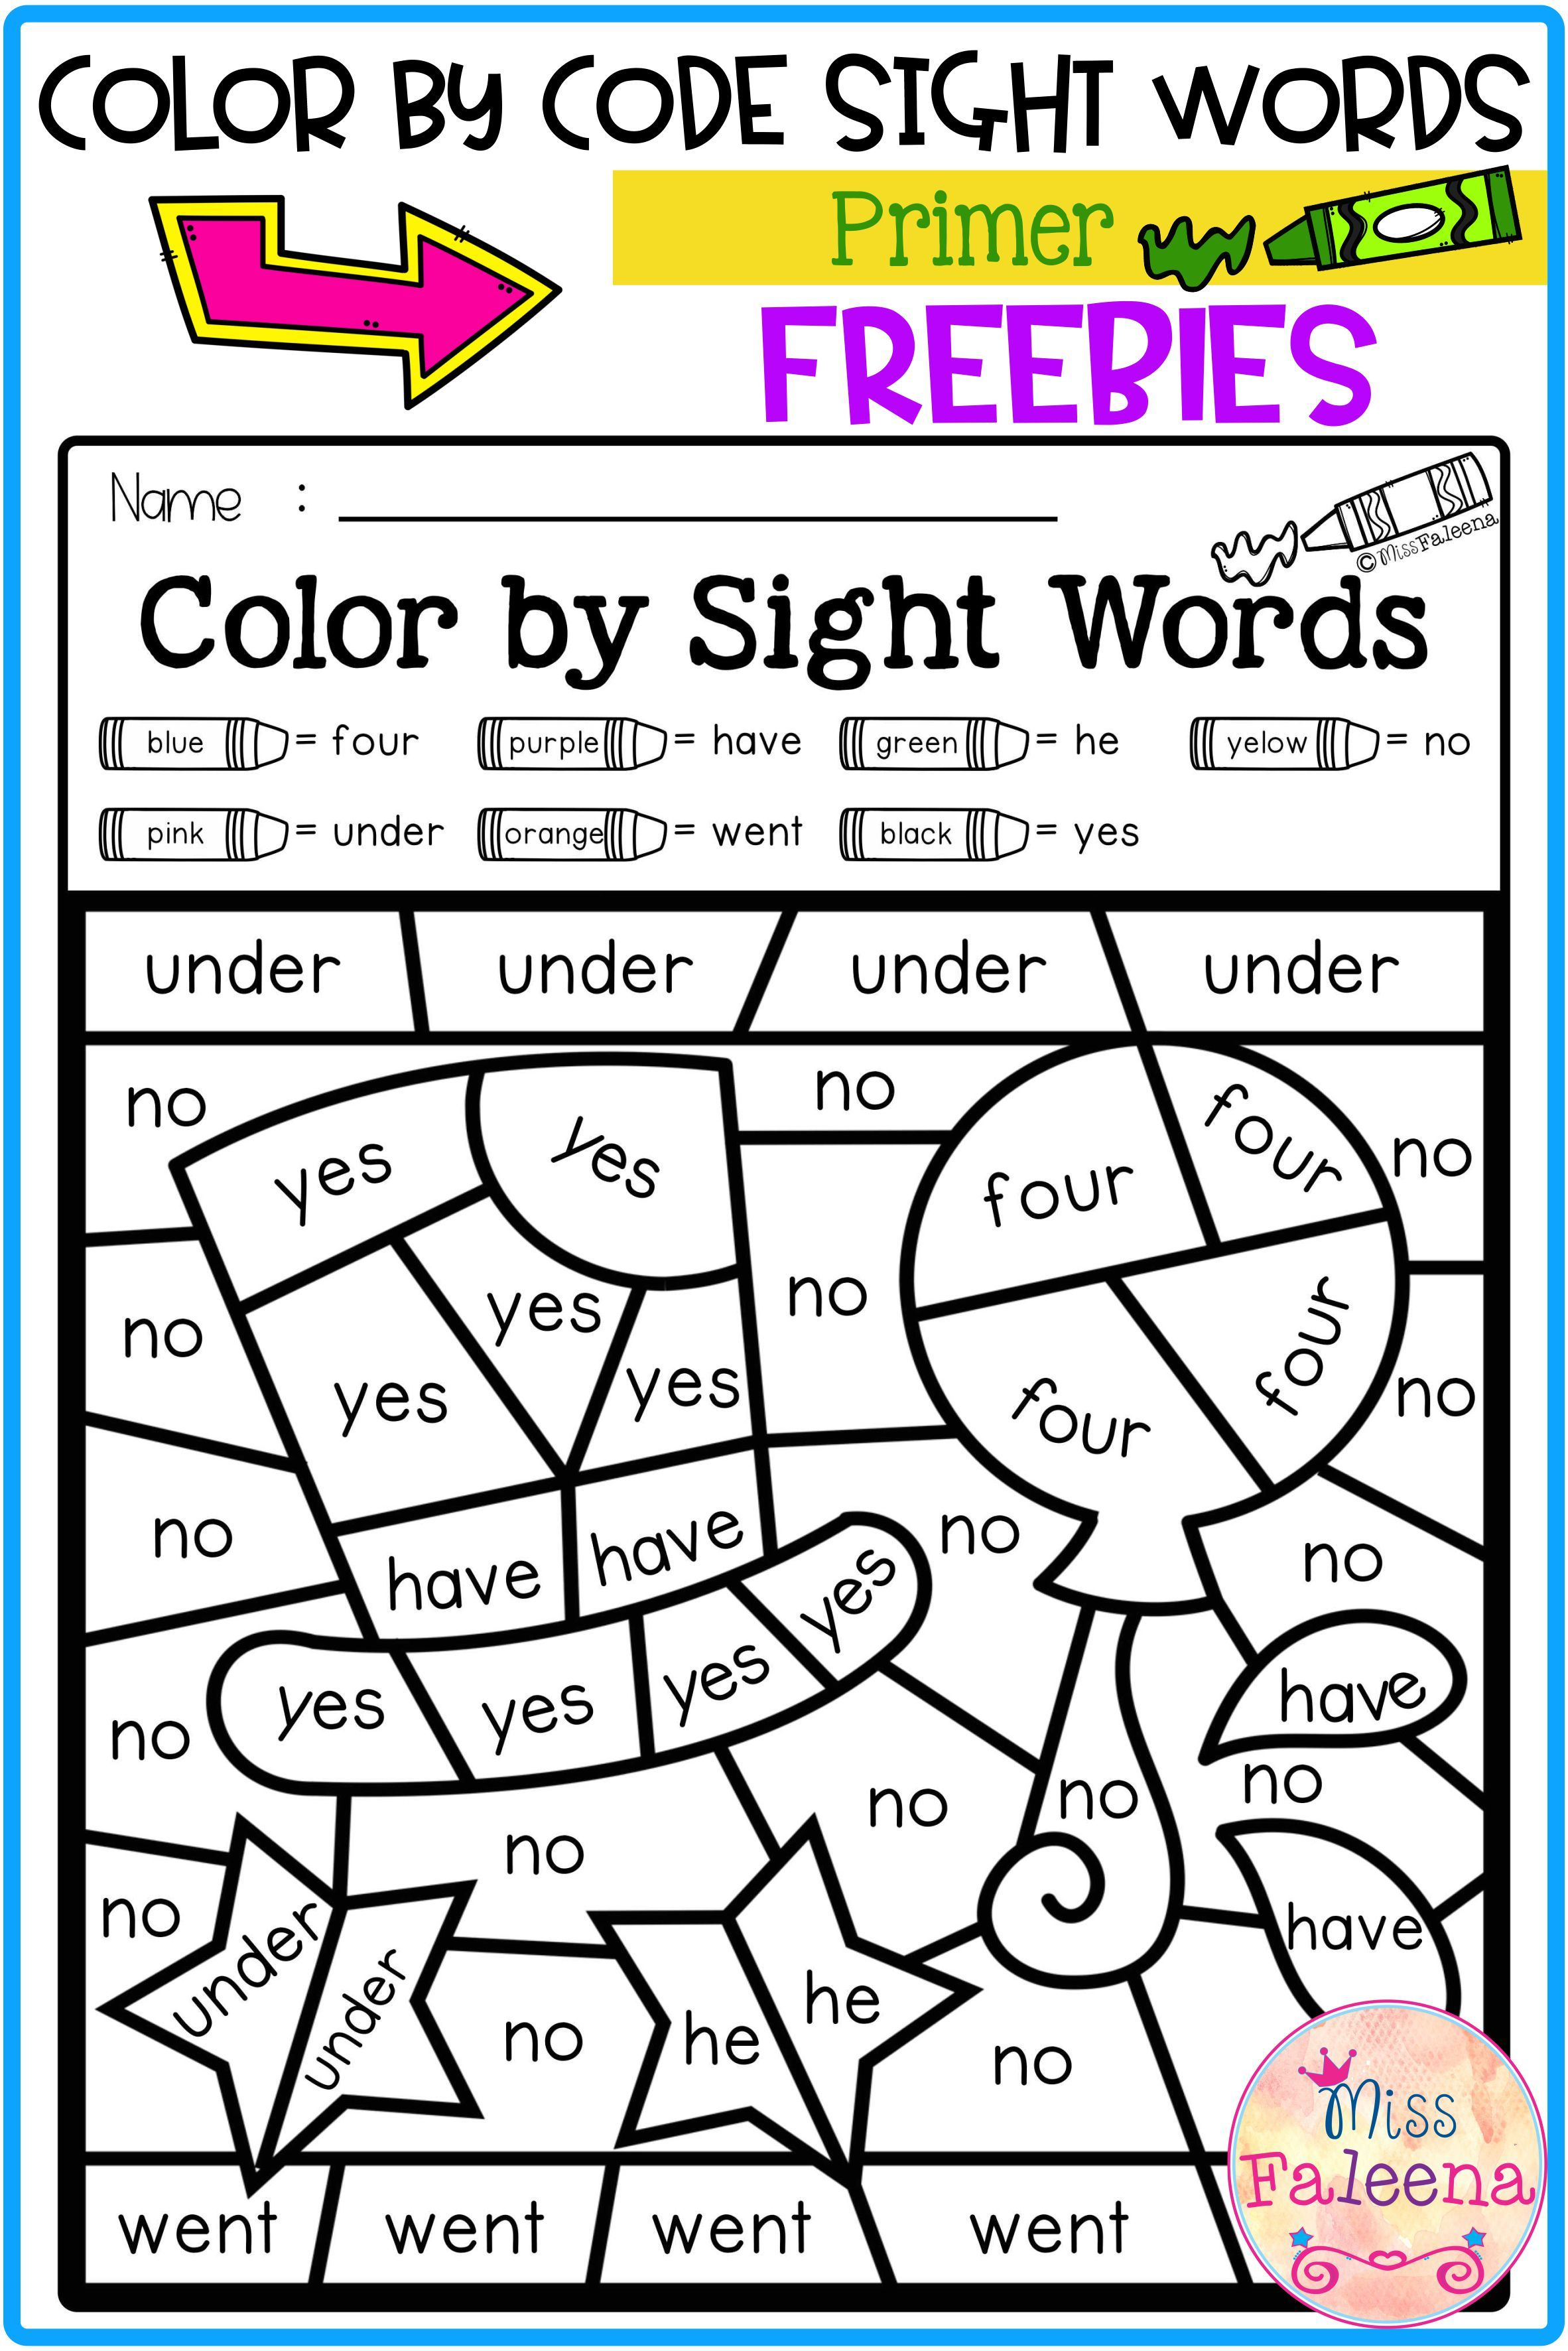 Free Color By Code Sight Words Primer In